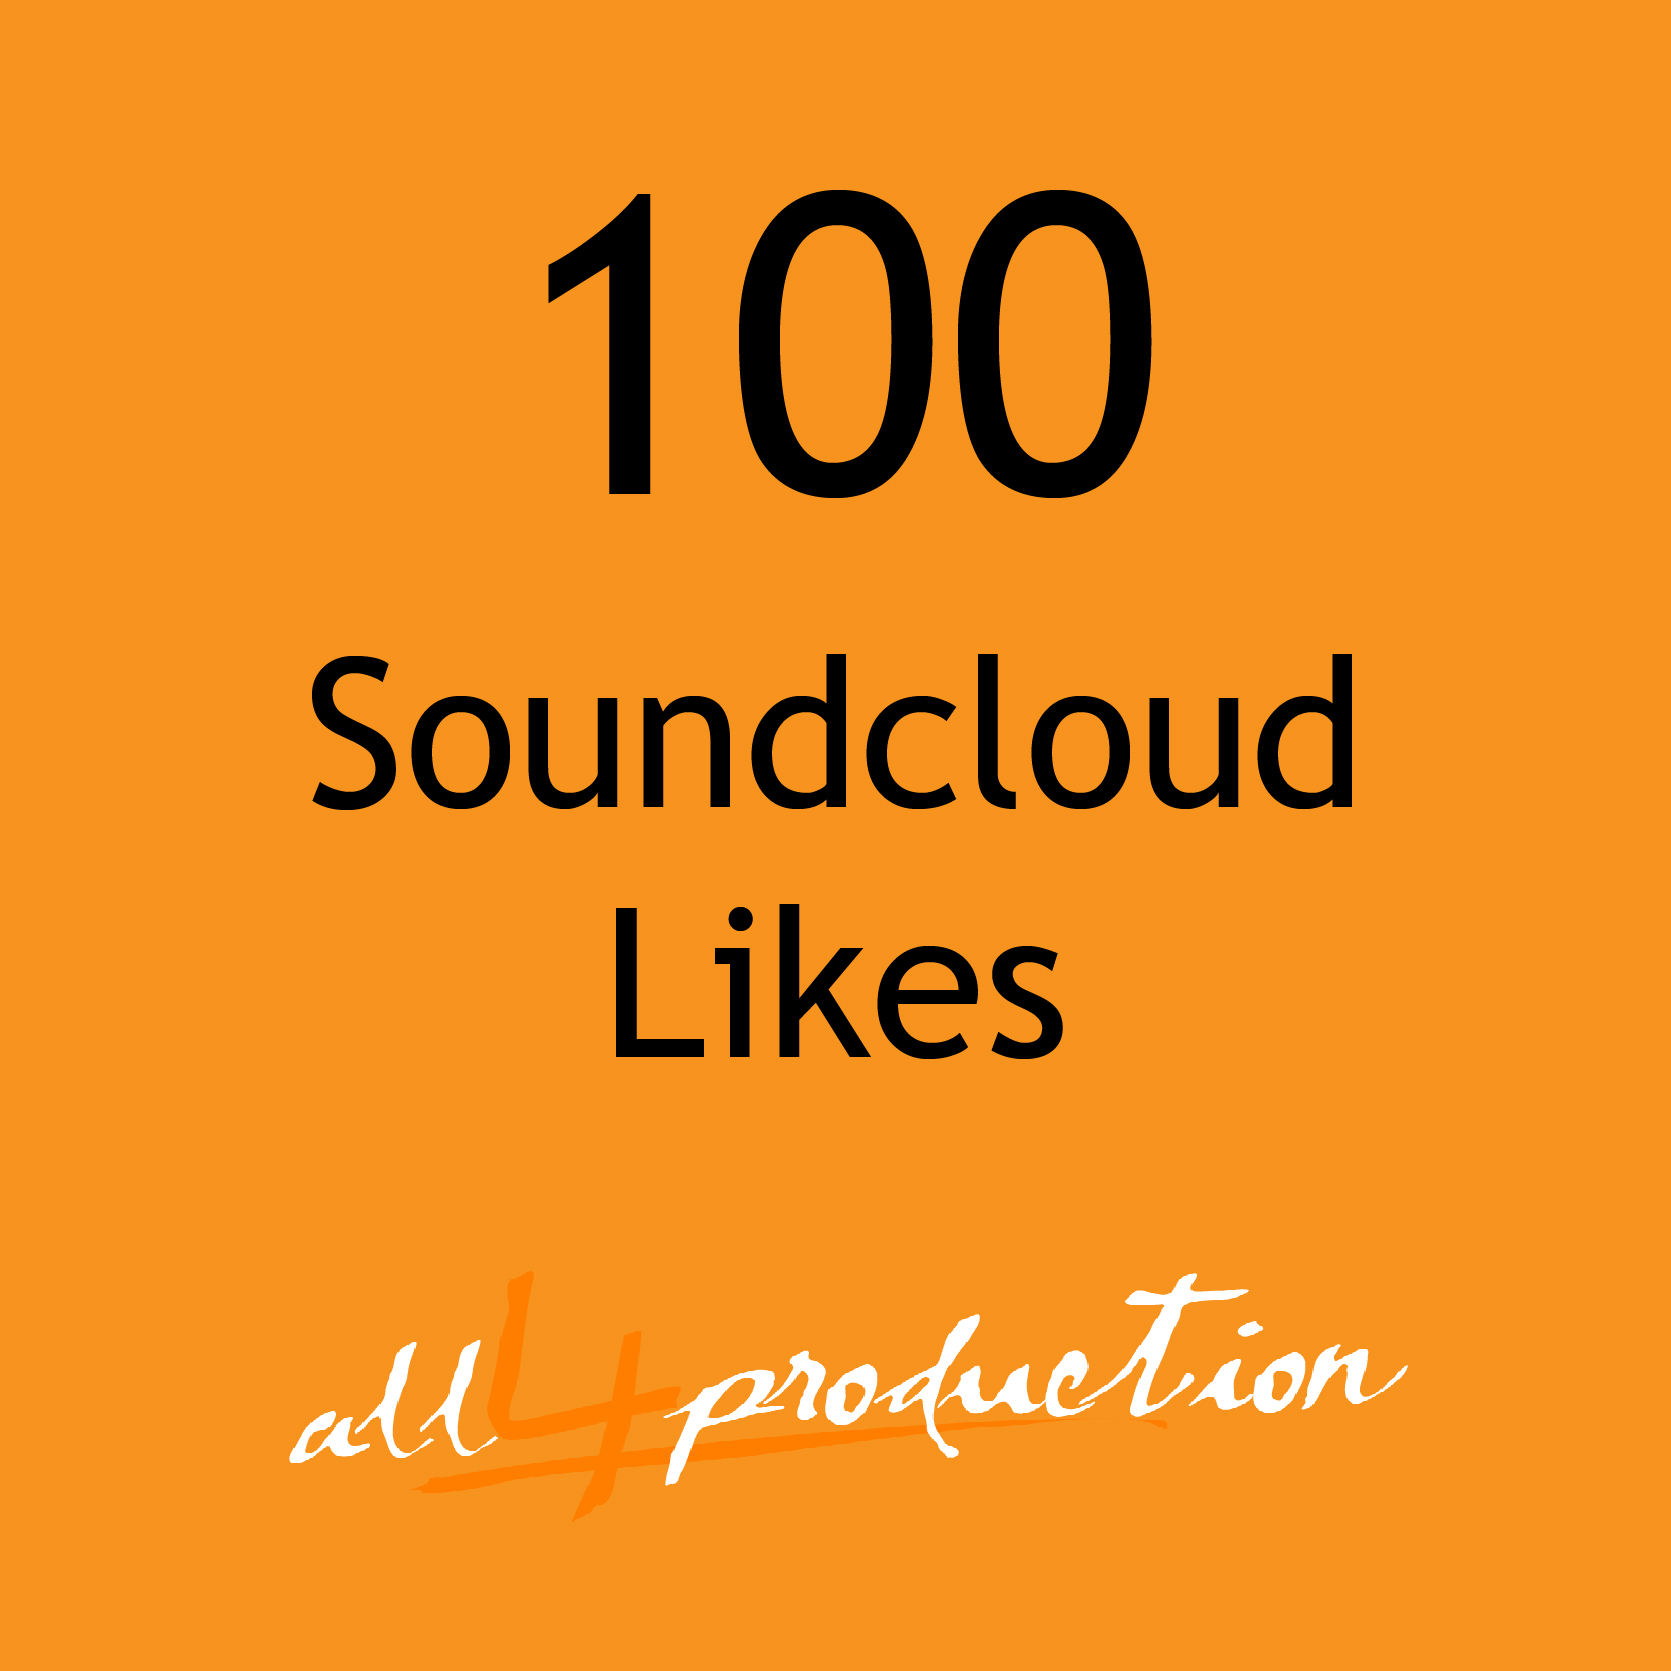 I will give you 100 FAST Soundcloud Likes in under 24 Hours